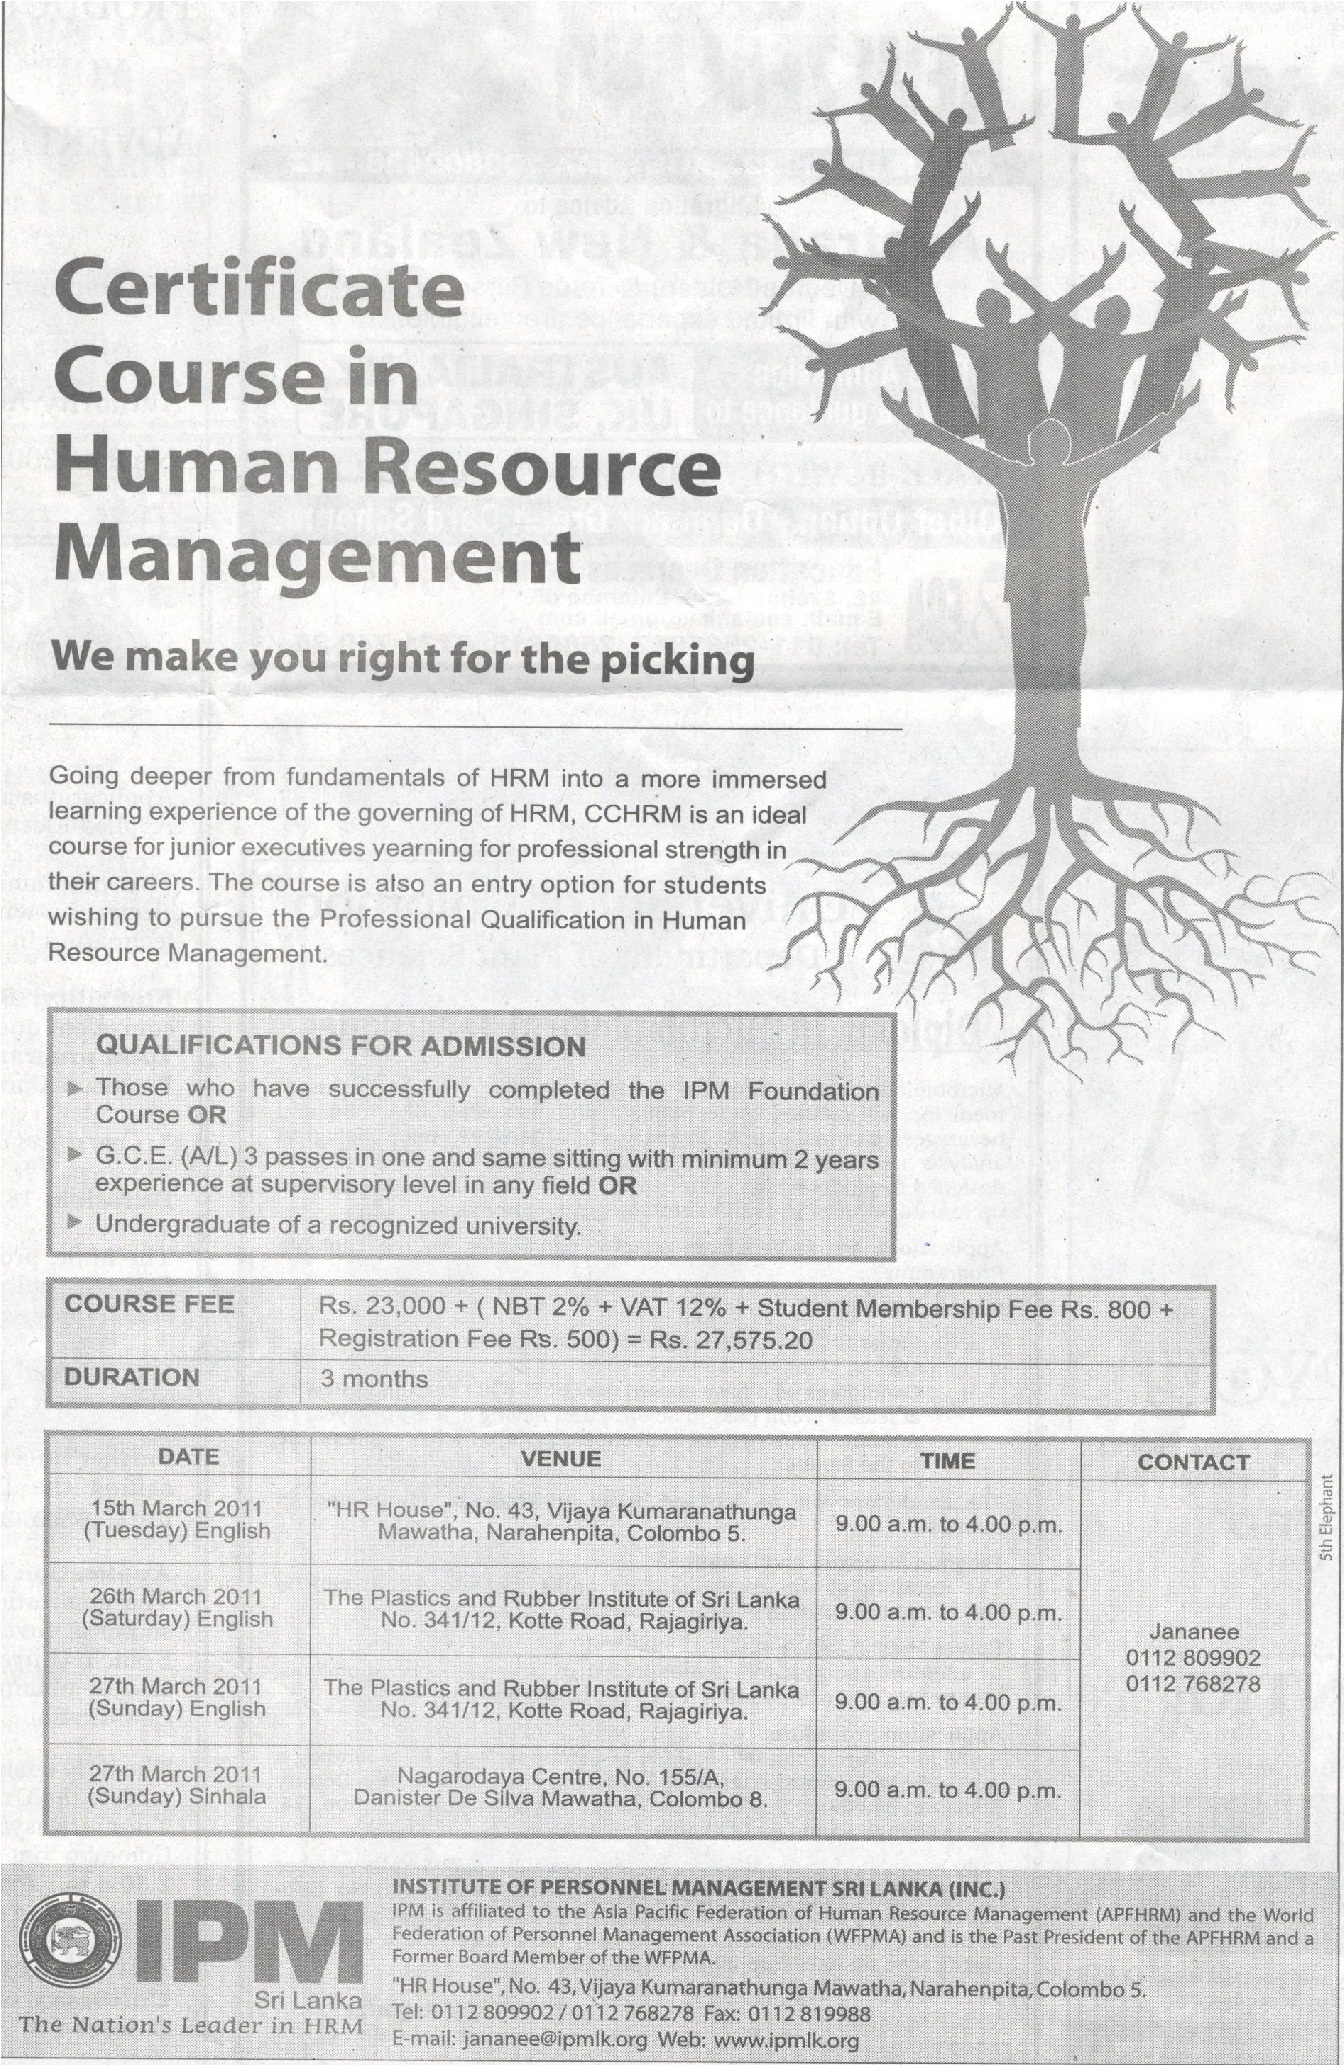 Certificate Course In Human Resource Management Ipm Synergyy